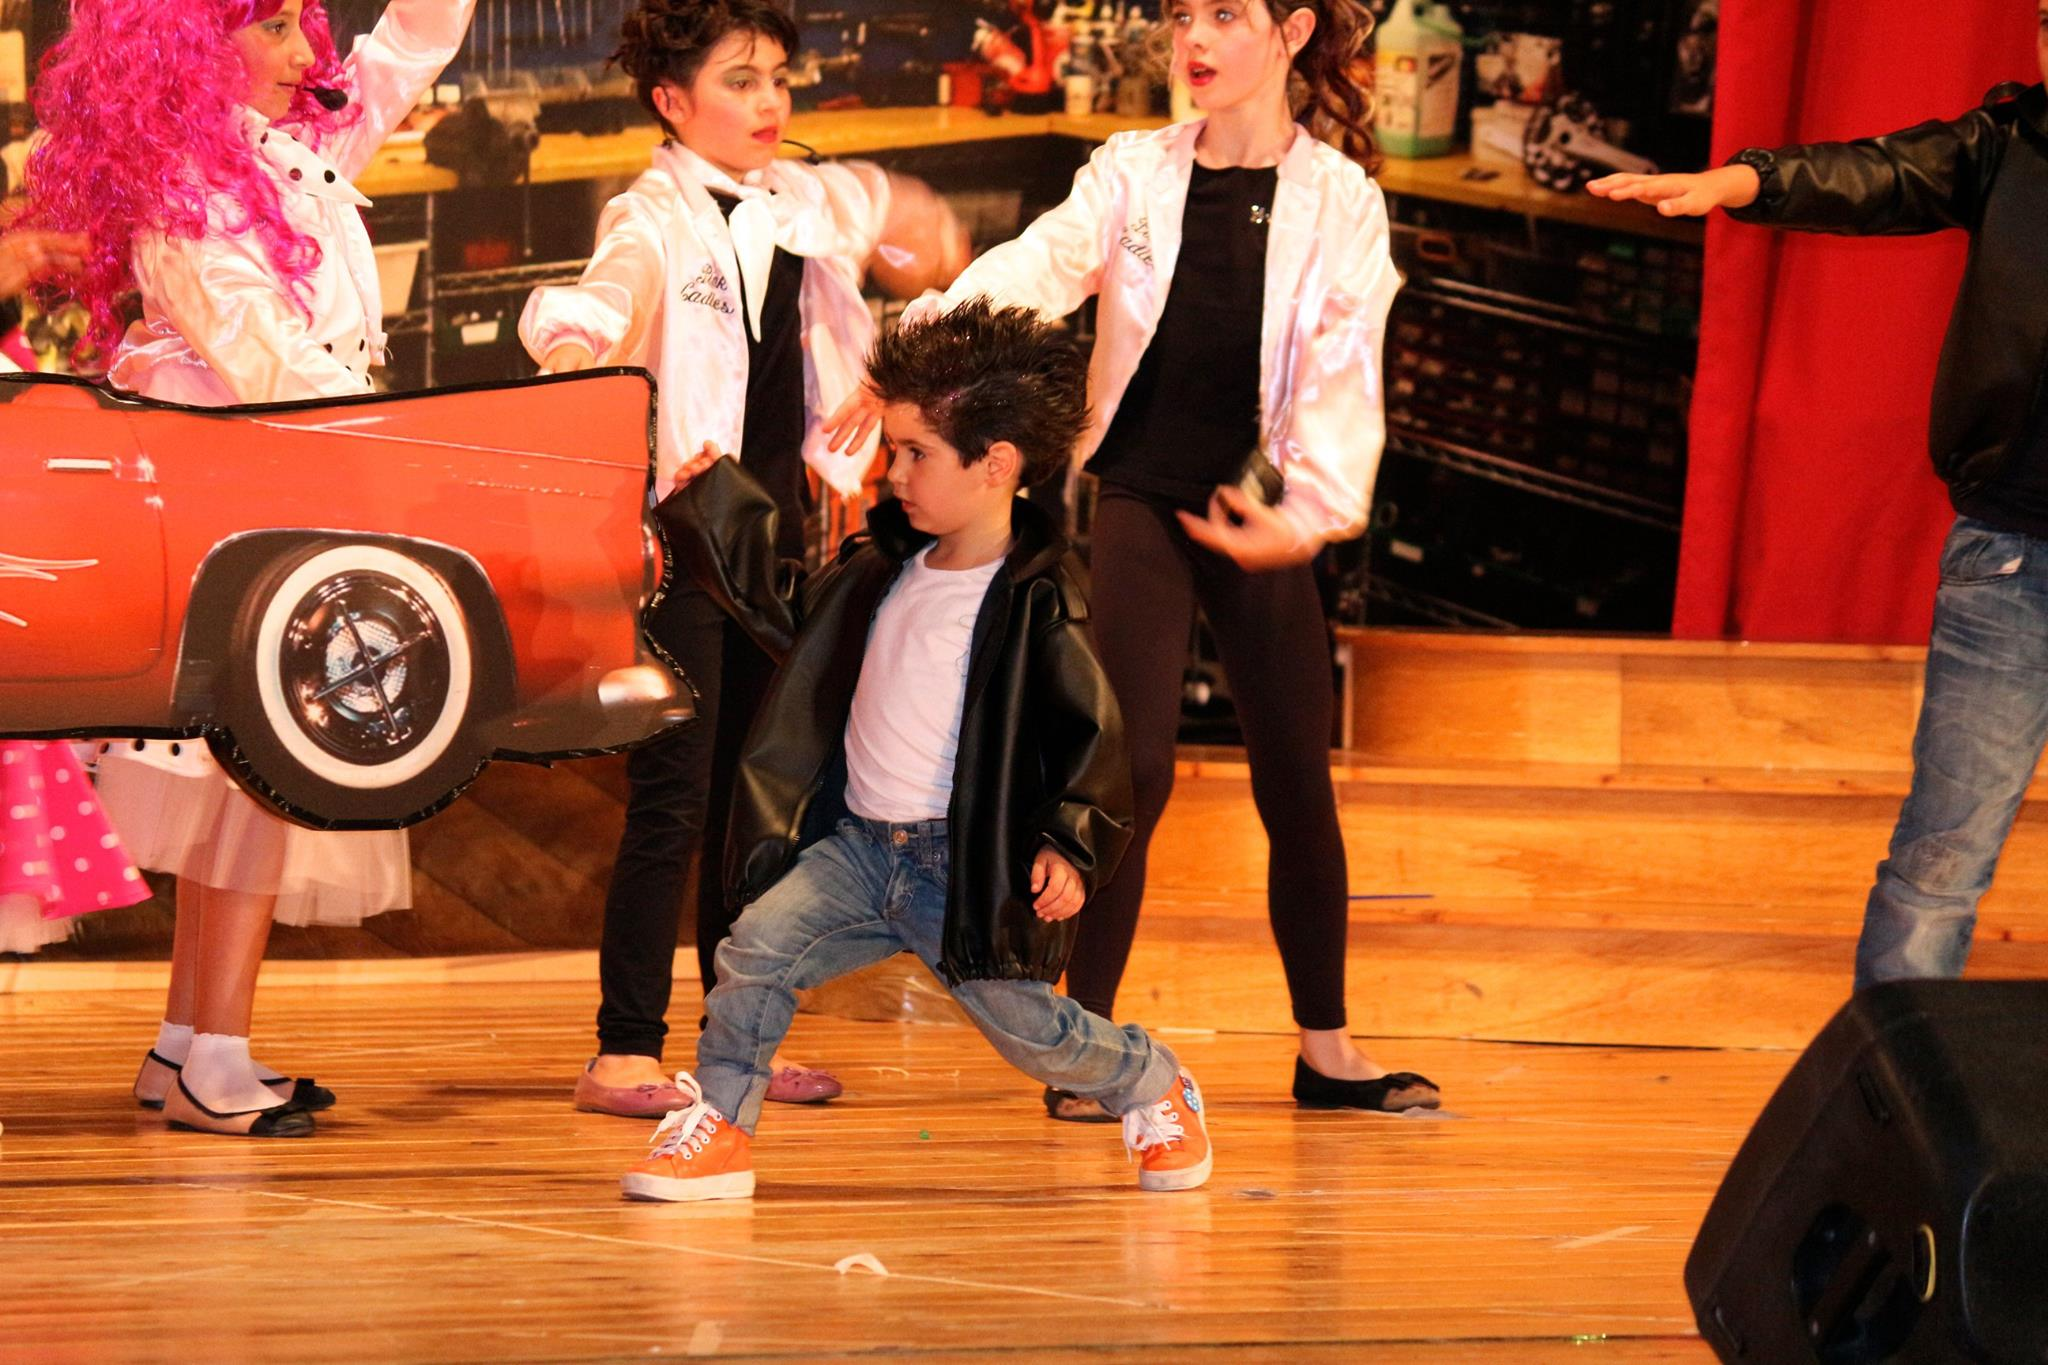 davide grease musical 18.jpg